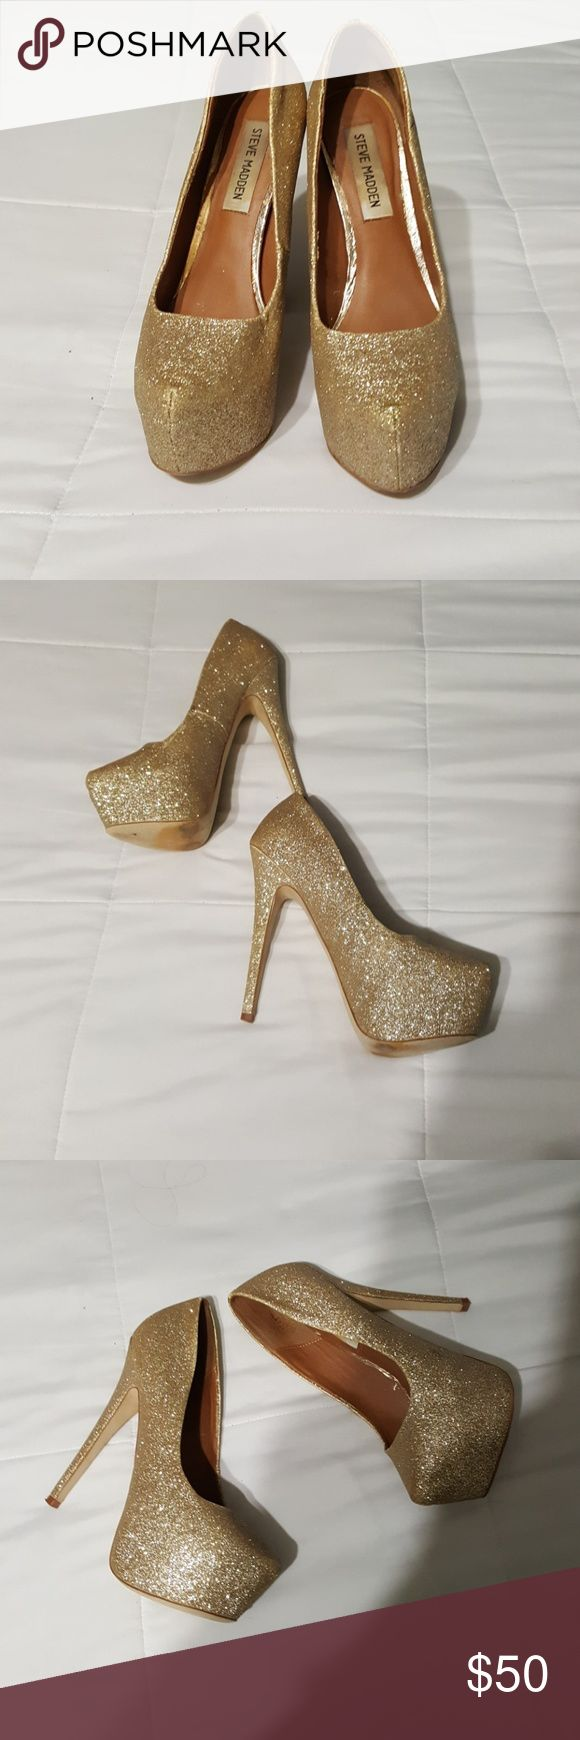 STEEVE MADDEN GLITTER HEELS 3 OUT OF 5 CONDITION  NO TRADES  REASONABLE OFFERS ONLY  HEEL IS 5 INCHES  1 INCH PLATFORM Steve Madden Shoes Platforms